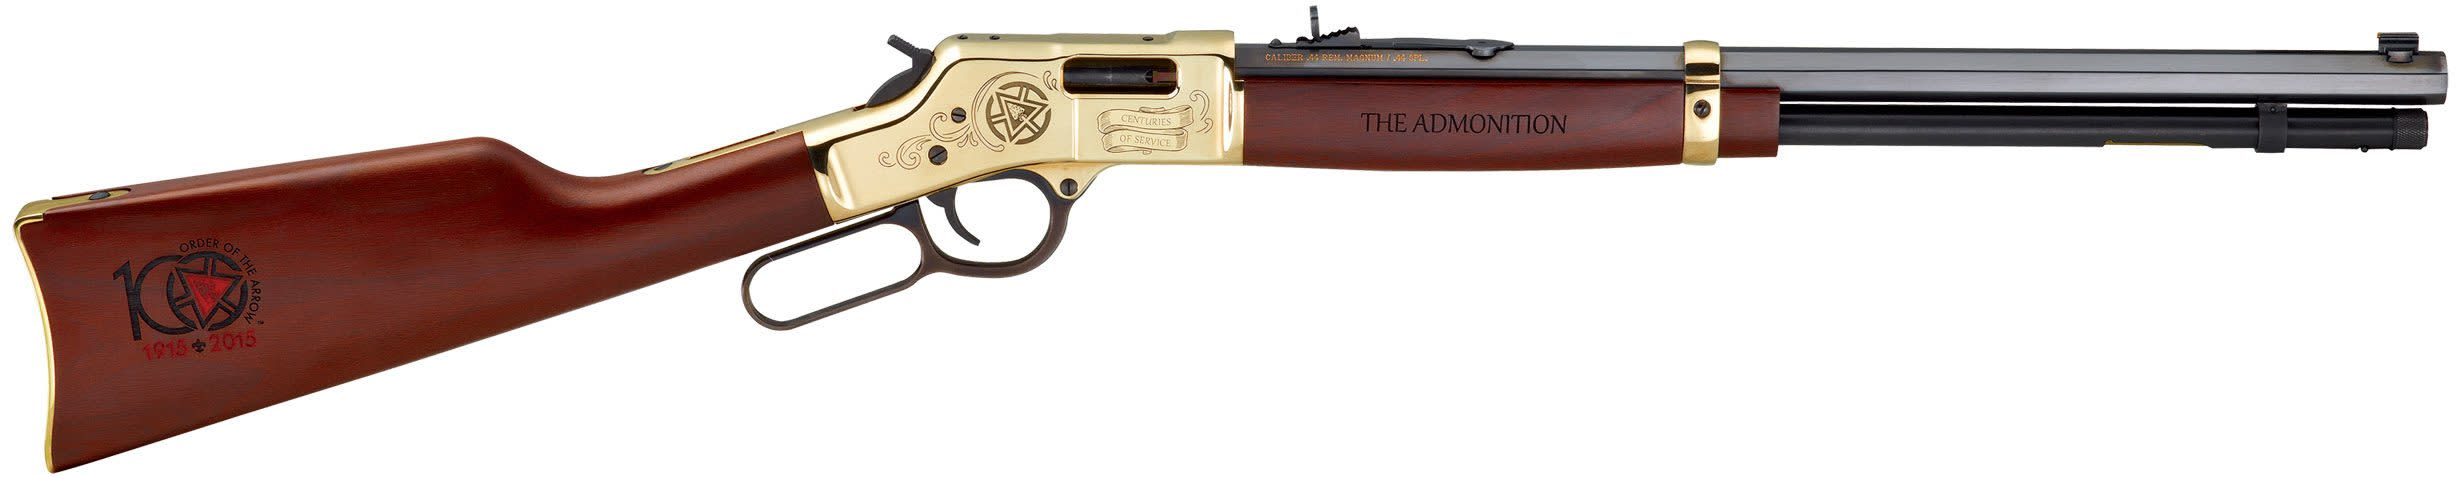 Henry Big Boy Order of the Arrow Centennial Edition Lever-Action Rifle - 44 Rem Mag 20